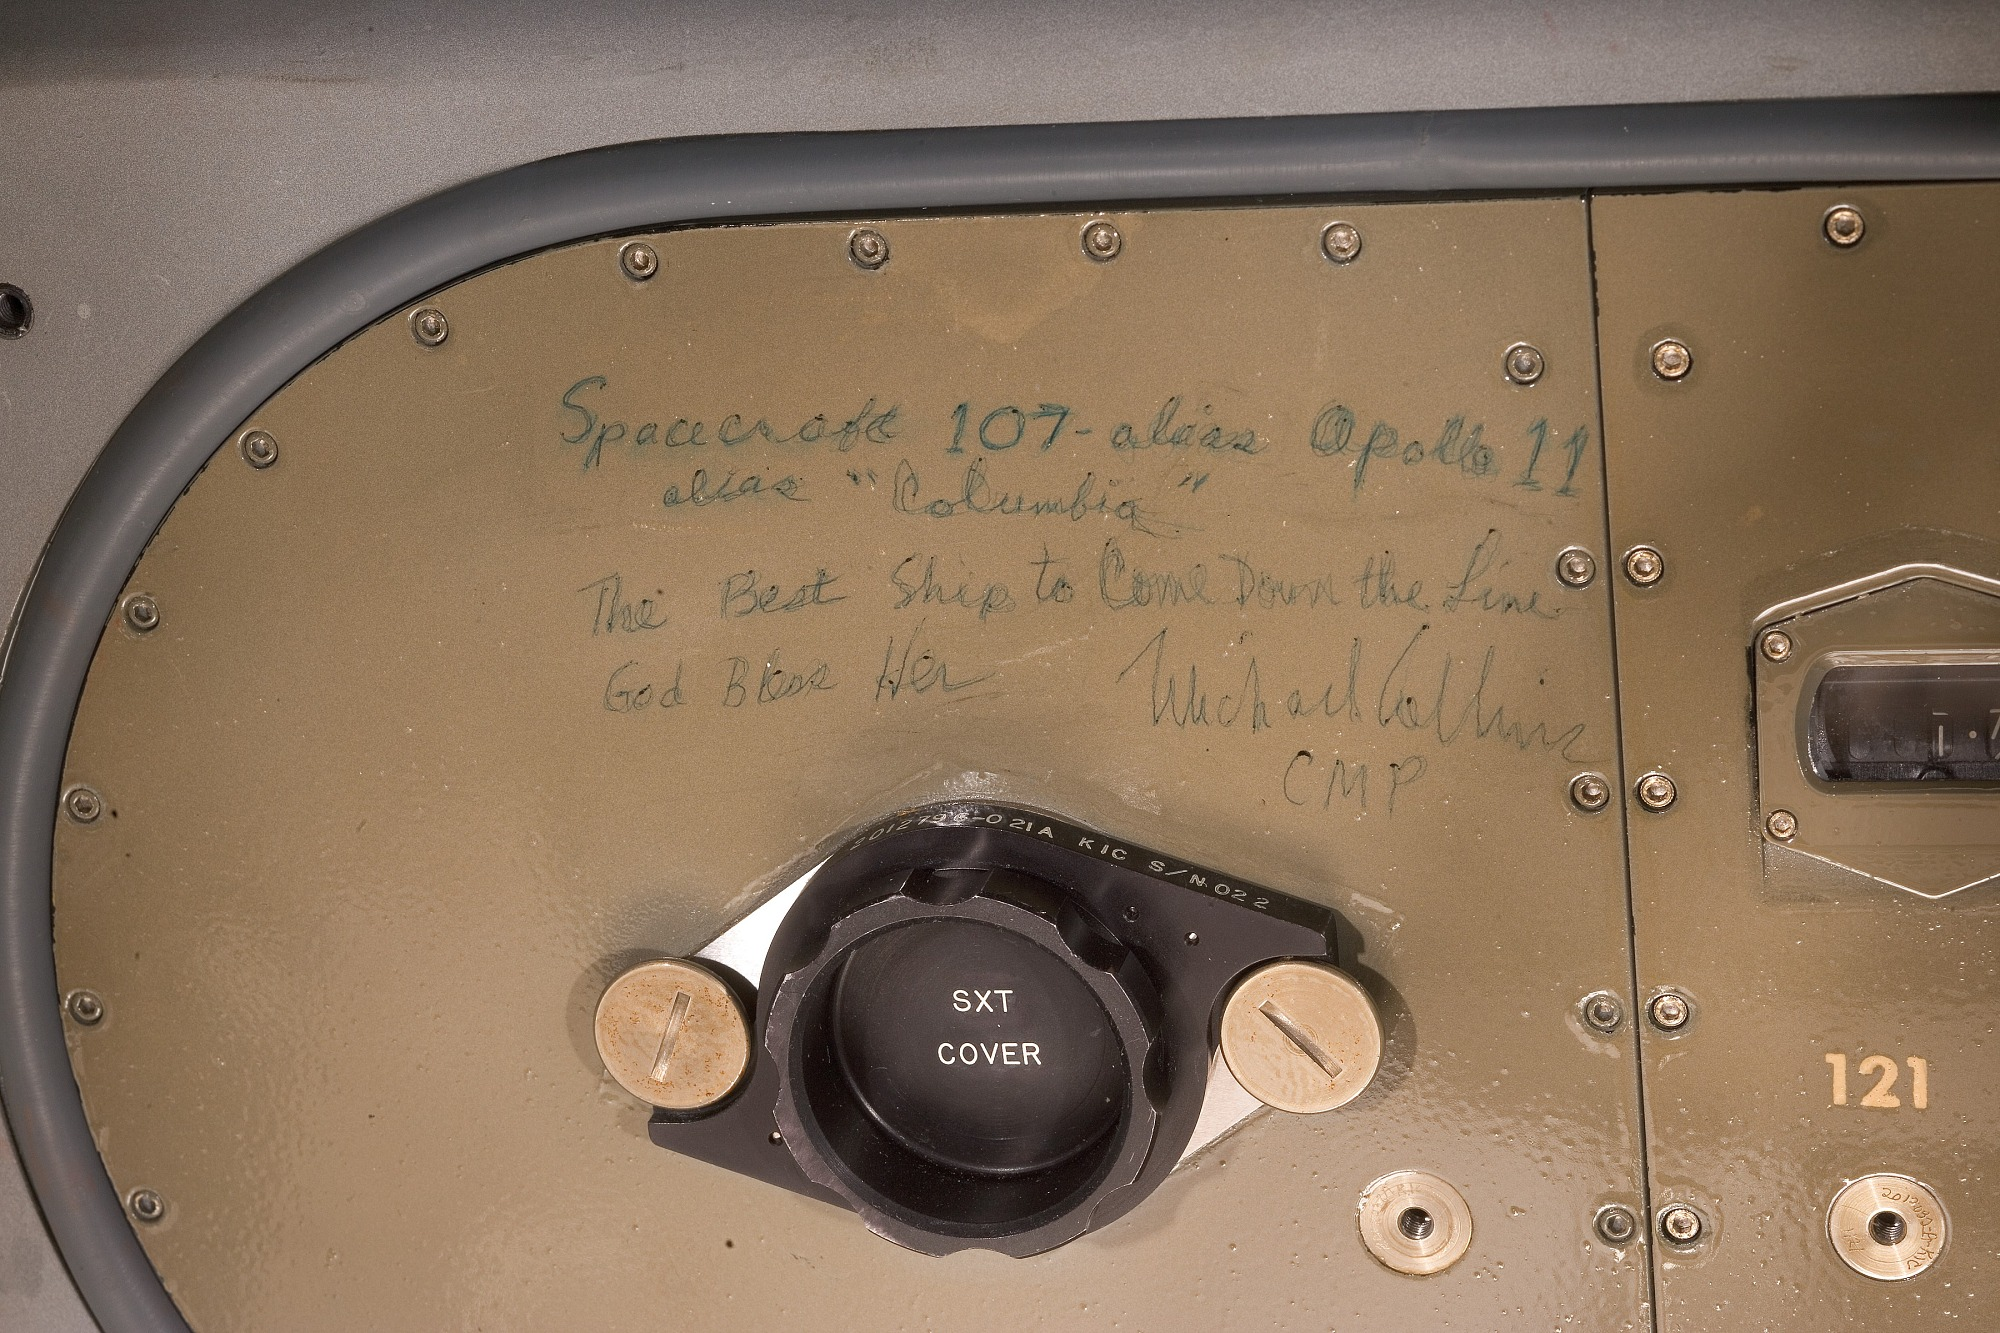 "Metal panel with rivets around the edge. Handwritten text in green ink reads: 'Spacecraft 107 – alias Apollo 11 / alias ""Columbia"" / The Best Ship to Come Down the Line / God Bless Her / Michael Collins / CMP'."